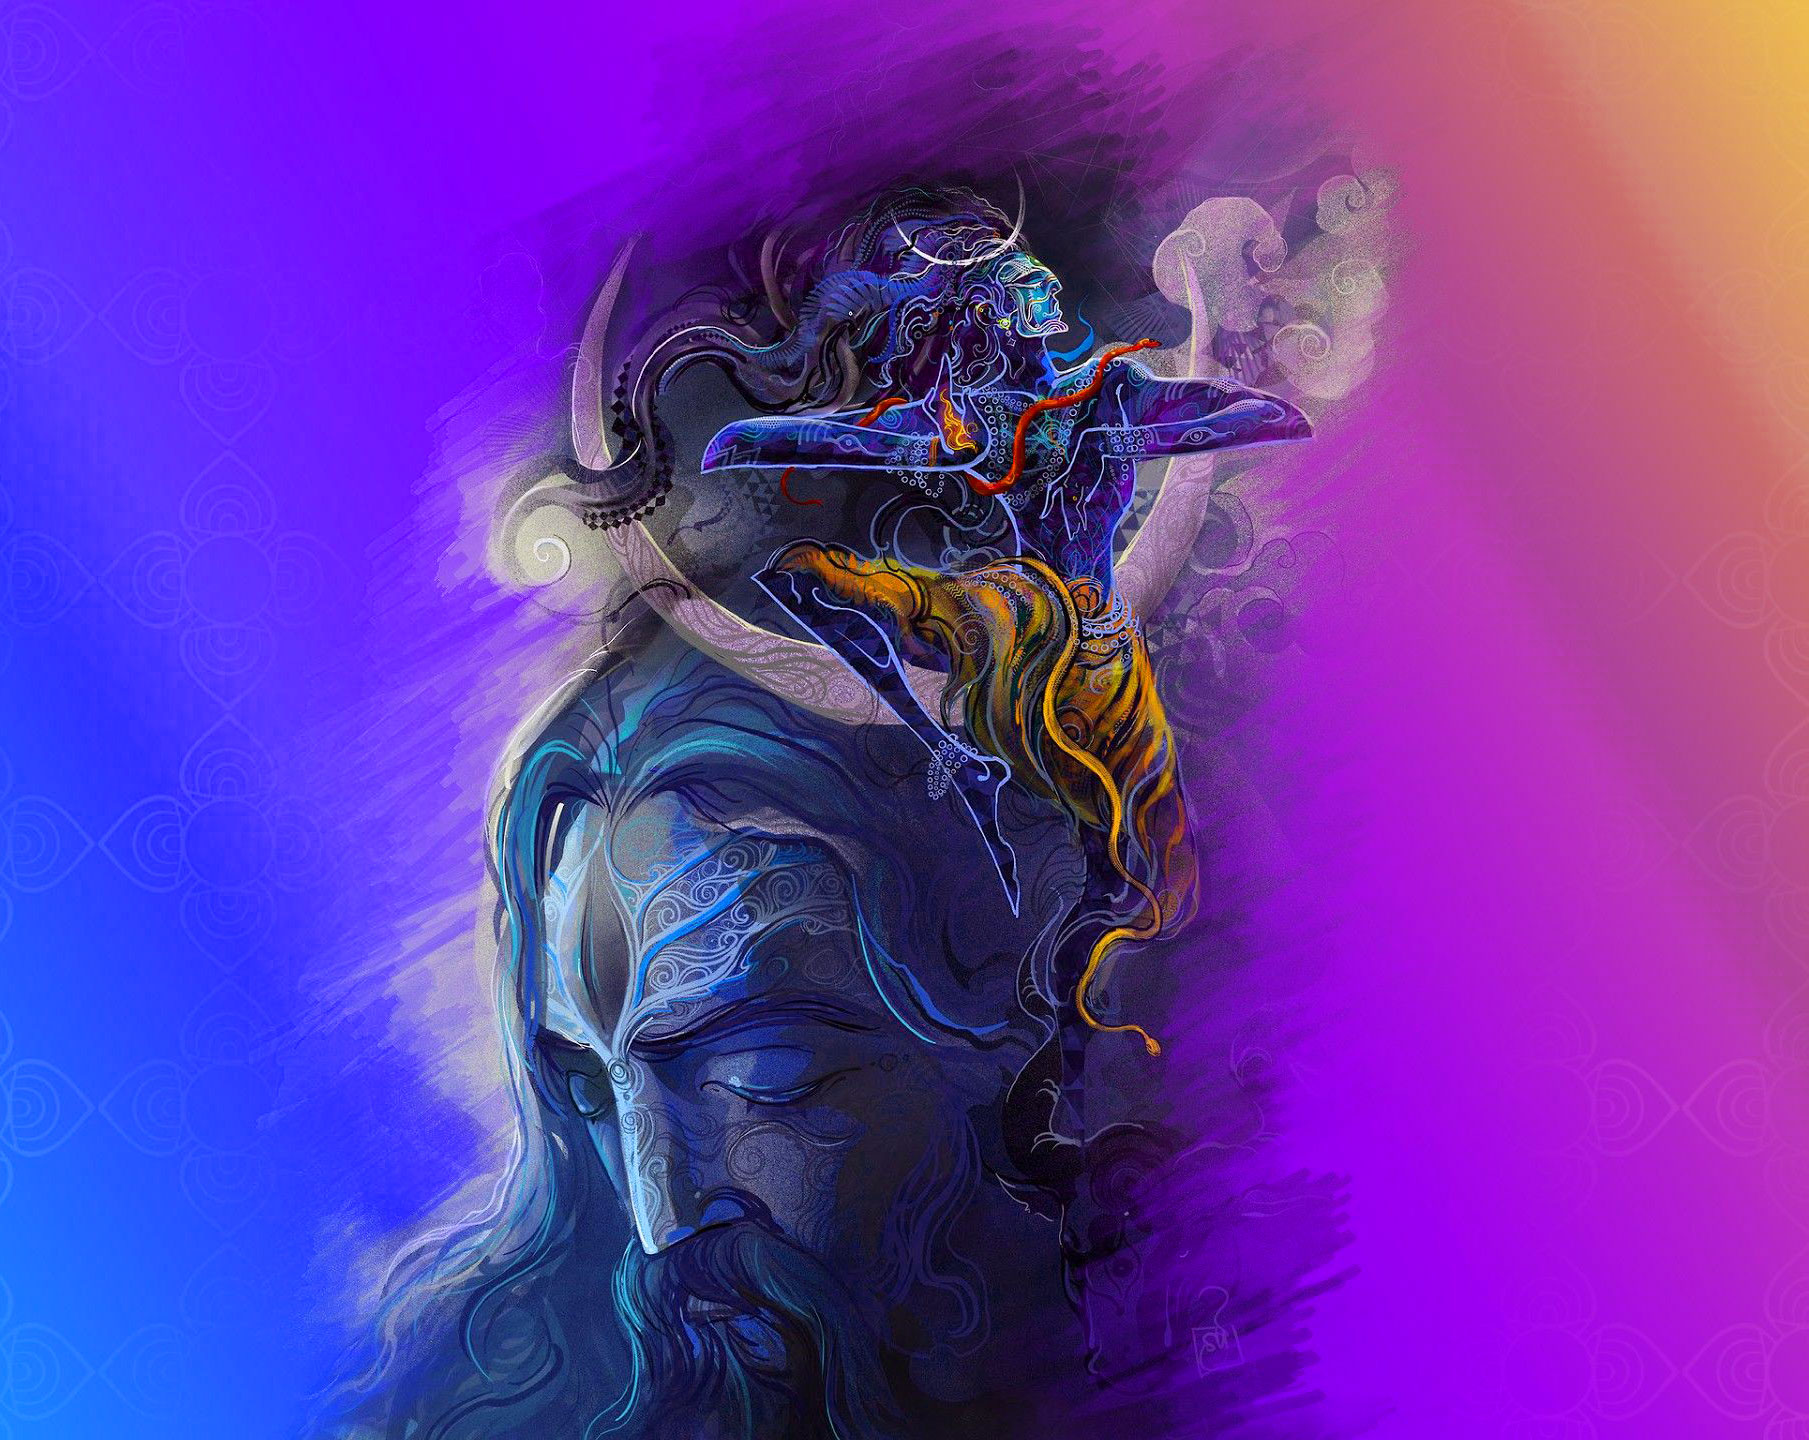 Shiva Images wallpaper photo for download